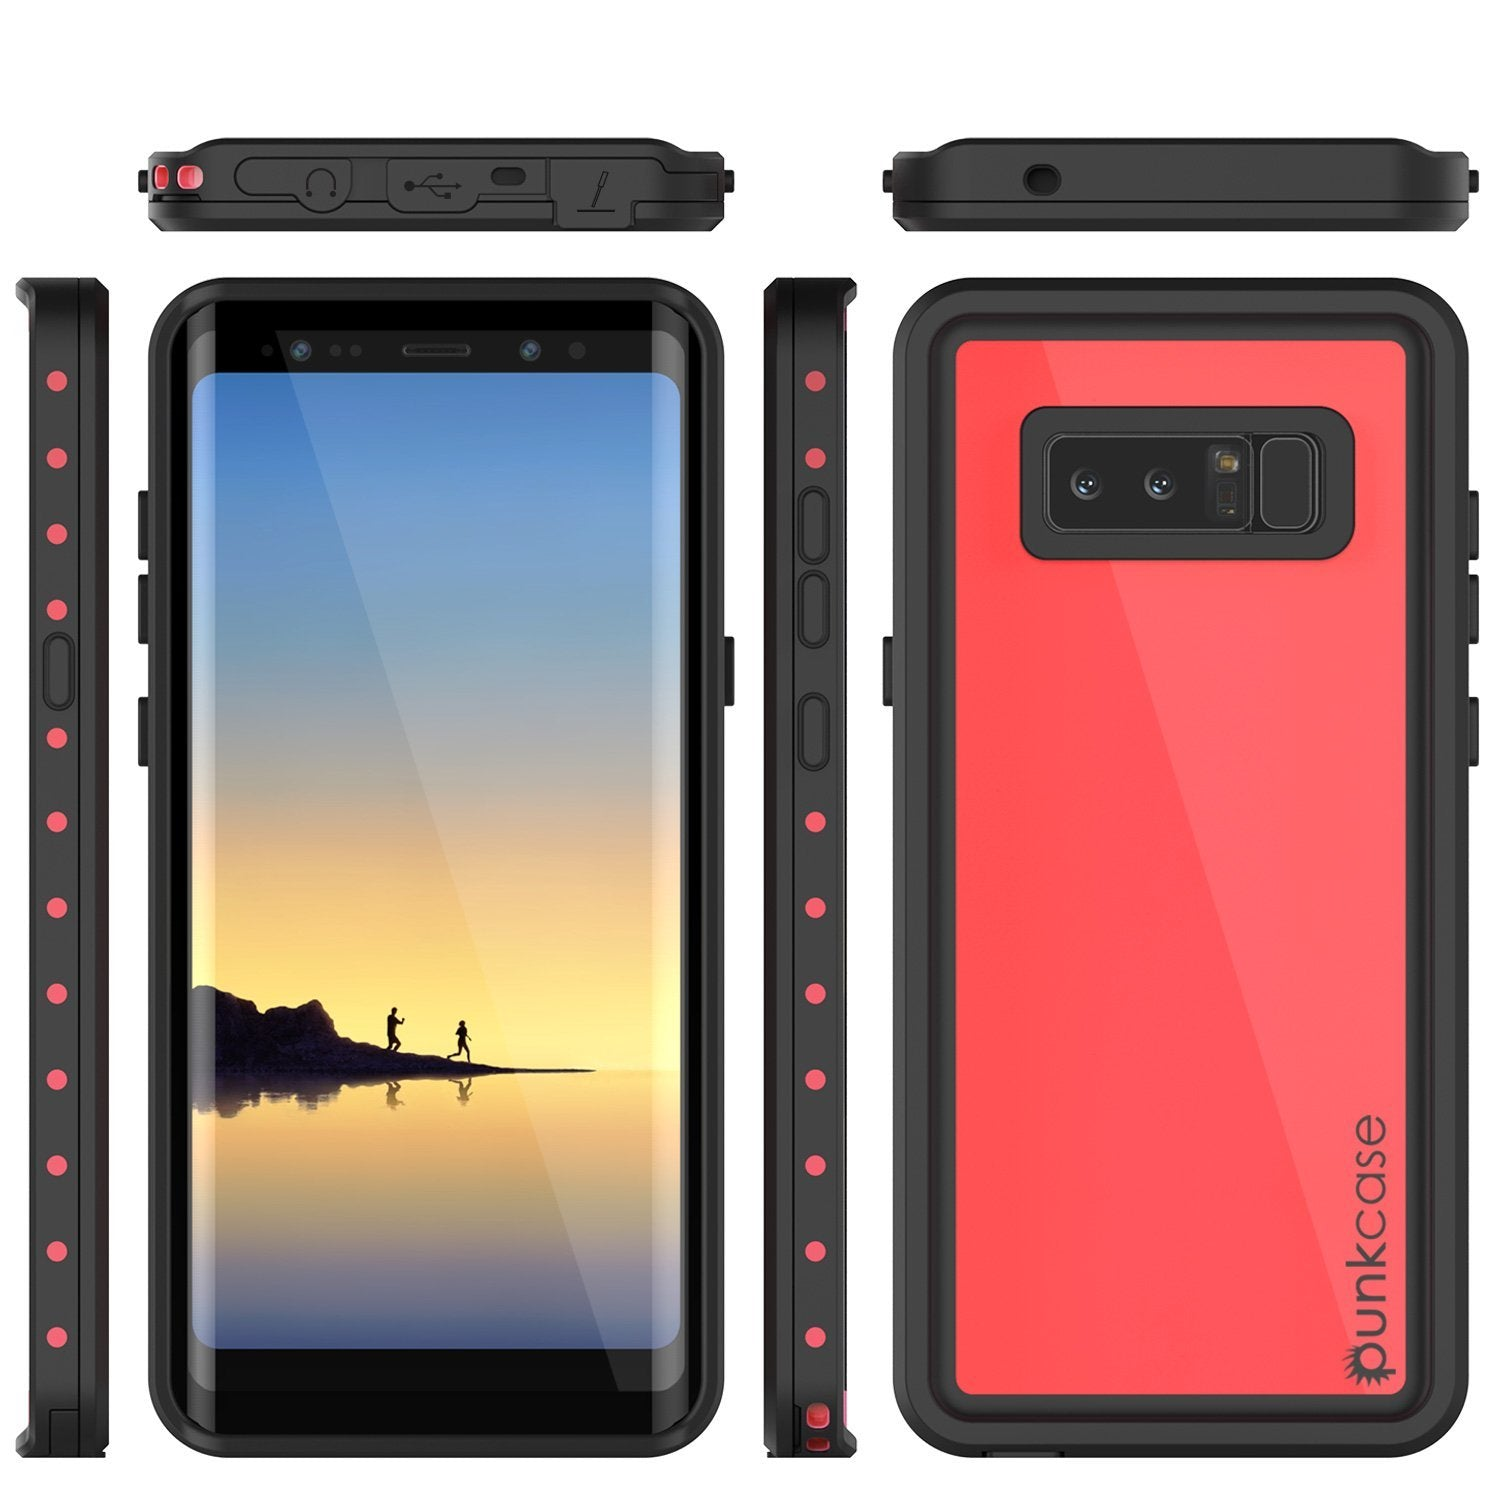 Galaxy Note 8 Waterproof Case PunkCase StudStar Pink Thin 6.6ft Underwater IP68 Shock/Snow Proof - PunkCase NZ